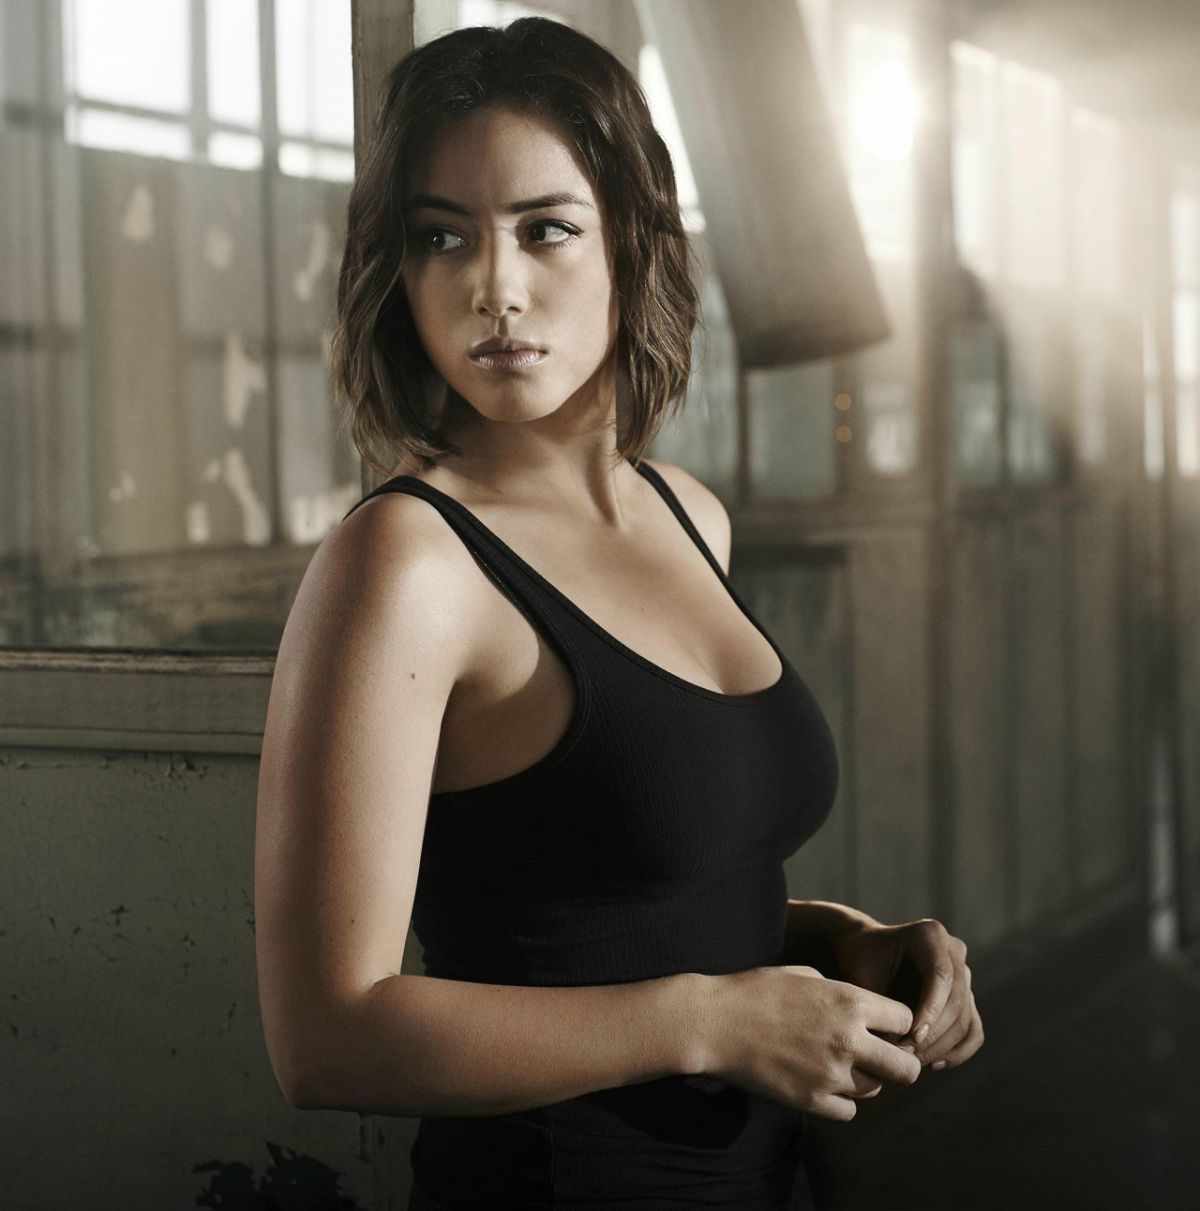 chloe-bennet-agents-of-shield-season-3-cast-photos_1.jpg